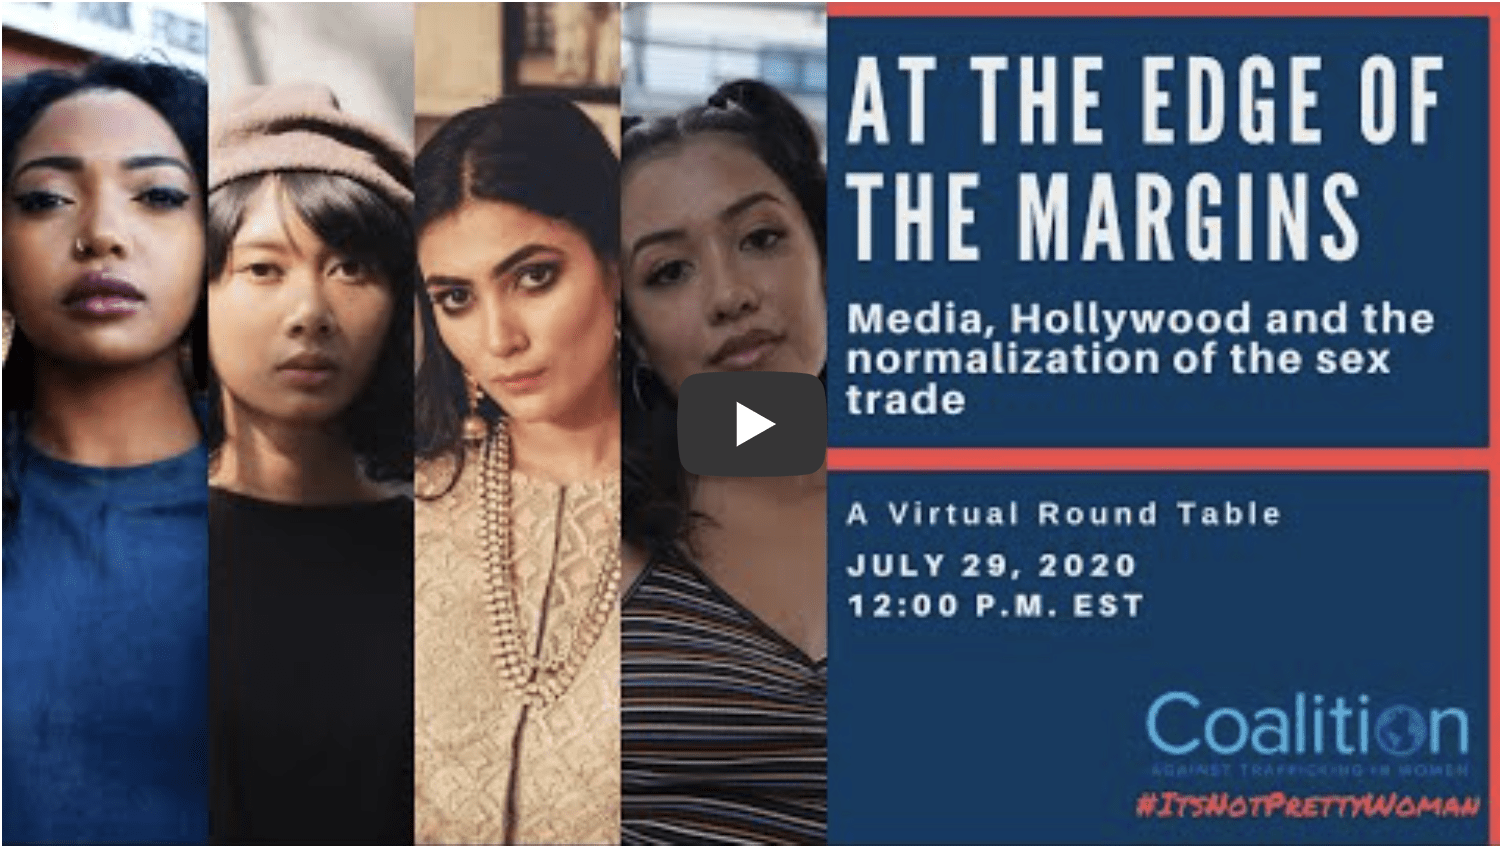 Media, Hollywood and the Normalization of the Sex Trade